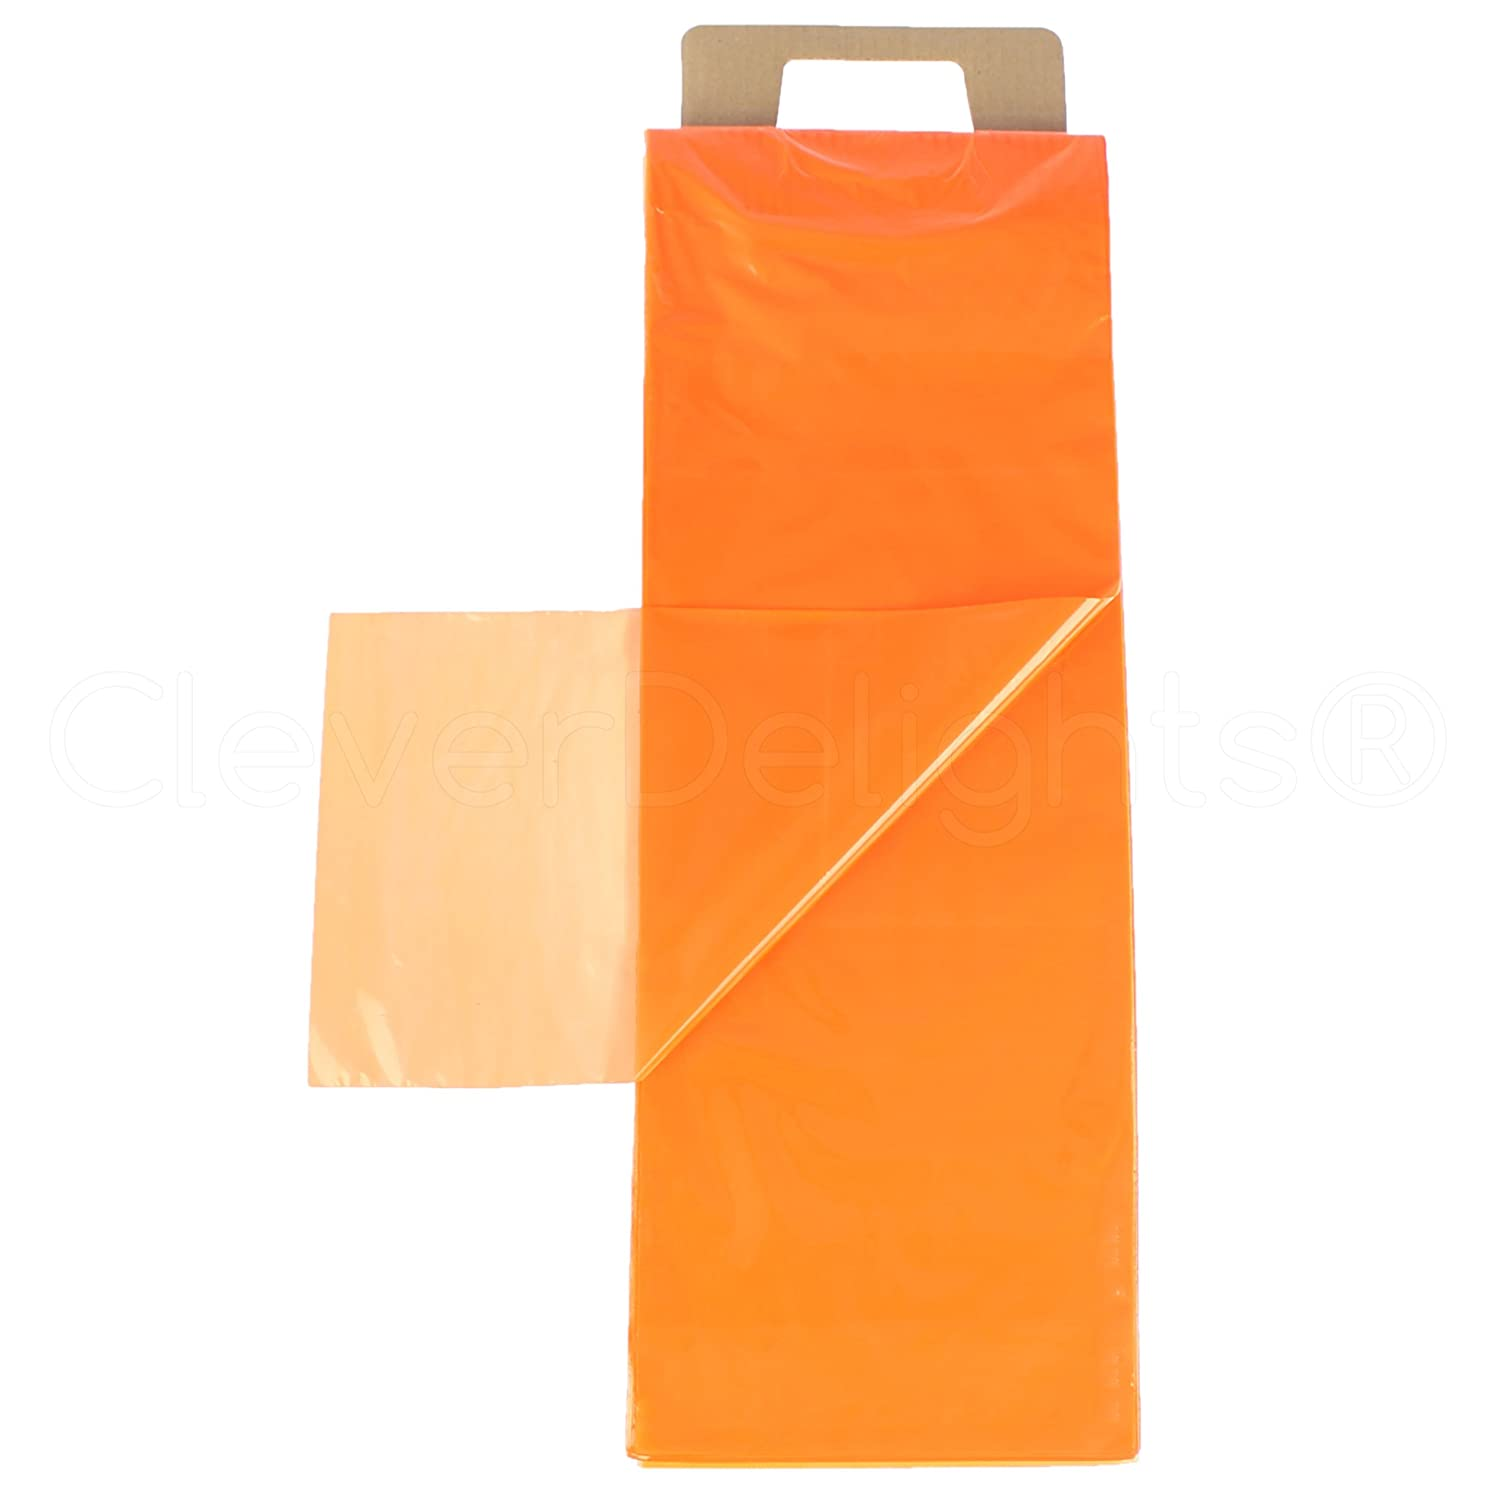 All items in the store CleverDelights Orange Newspaper Bags - 7.5